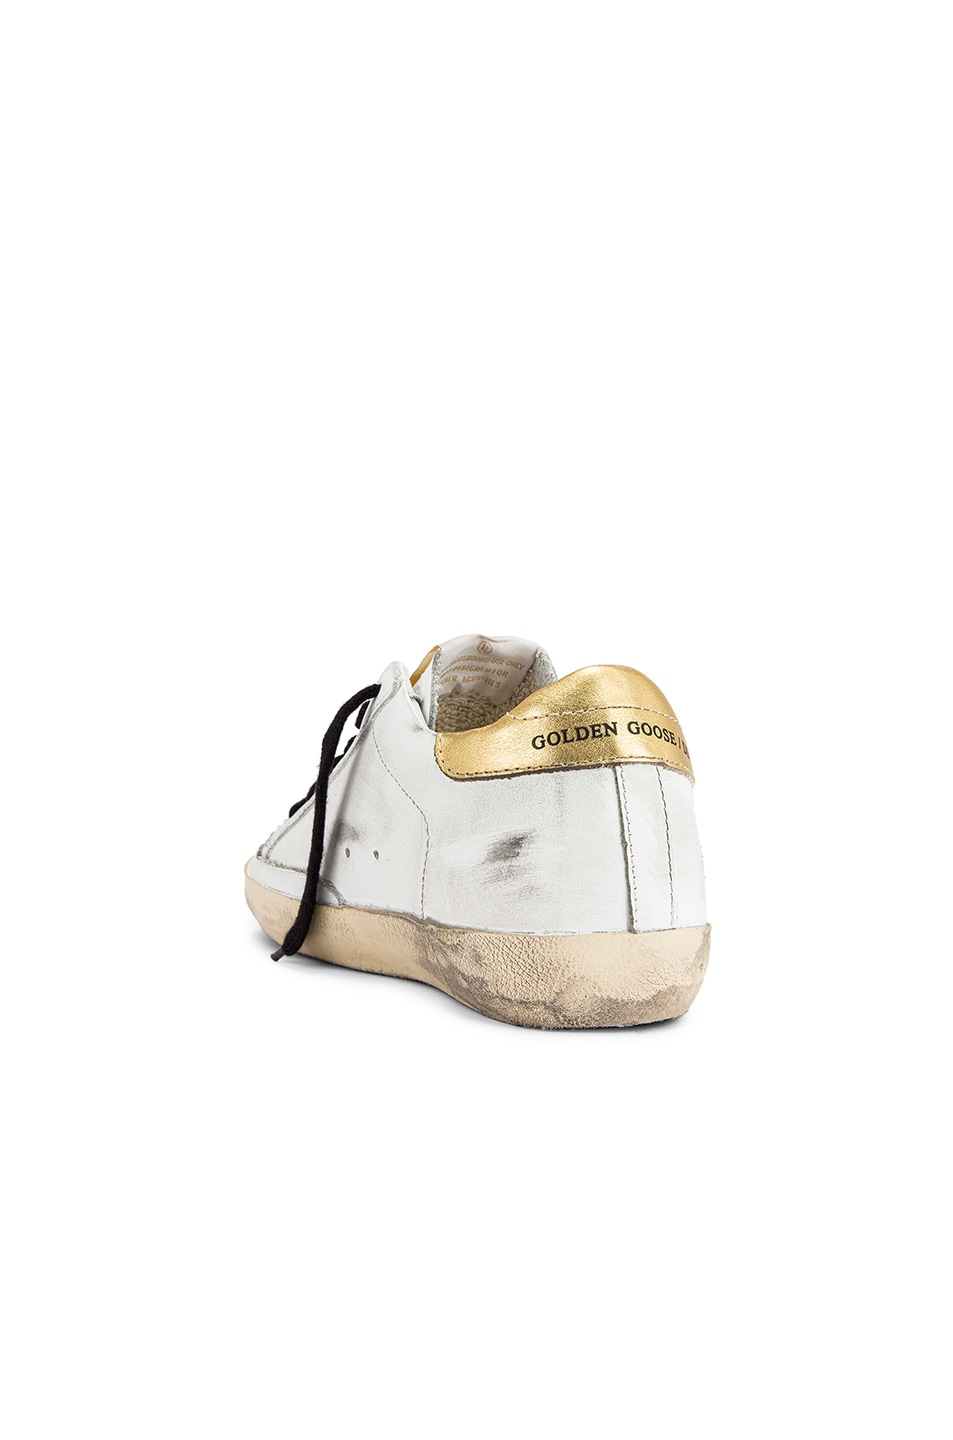 Image 3 of Golden Goose Superstar Sneaker in White Leather, Gold & Leopard